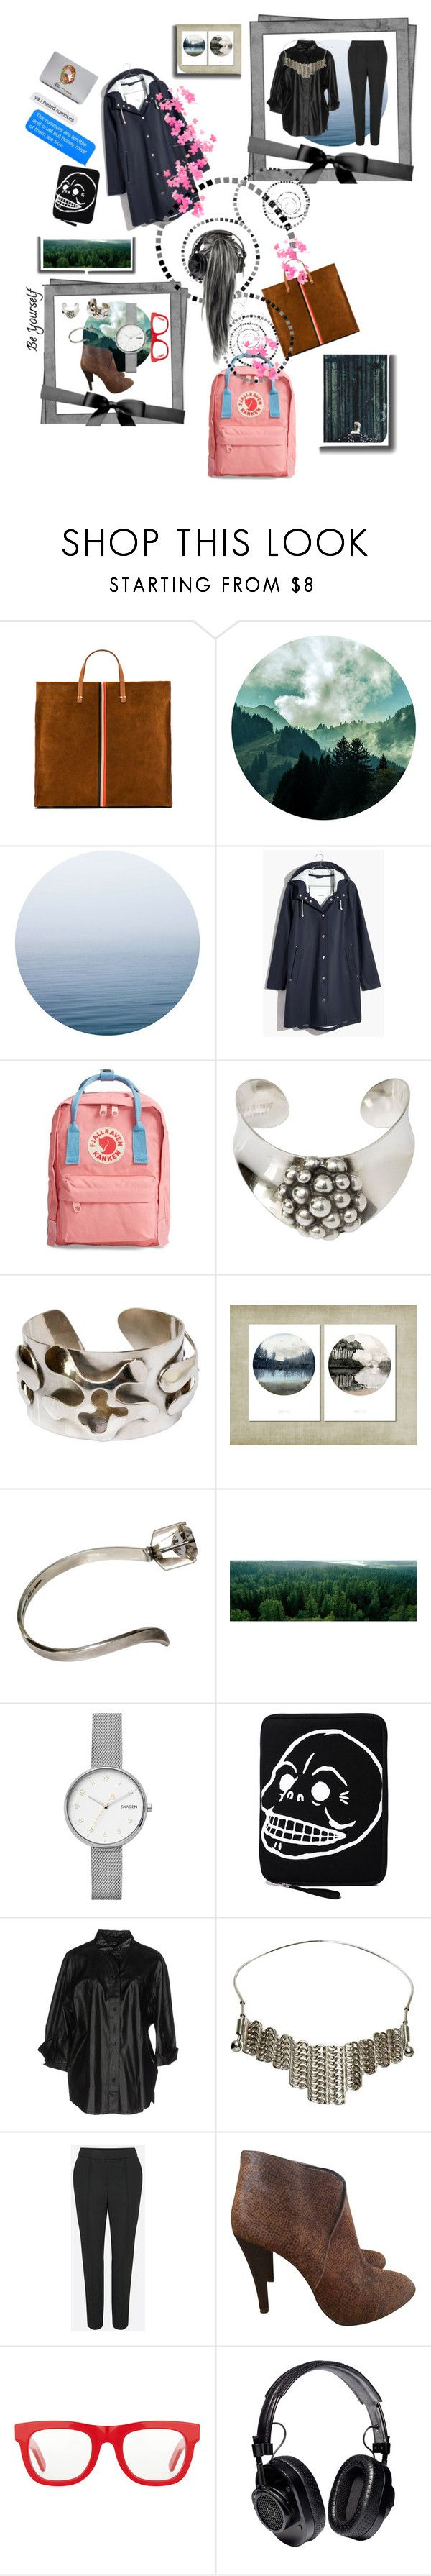 """""""🖤🖤🖤🖤Midweek Minimalist aesthetic with flowers🌸and pink💓"""" by maijah ❤ liked on Polyvore featuring Clare V., Madewell, Fjällräven, Skagen, Cheap Monday, Filippa K, RetroSuperFuture, Proenza Schouler, Pink and flower"""